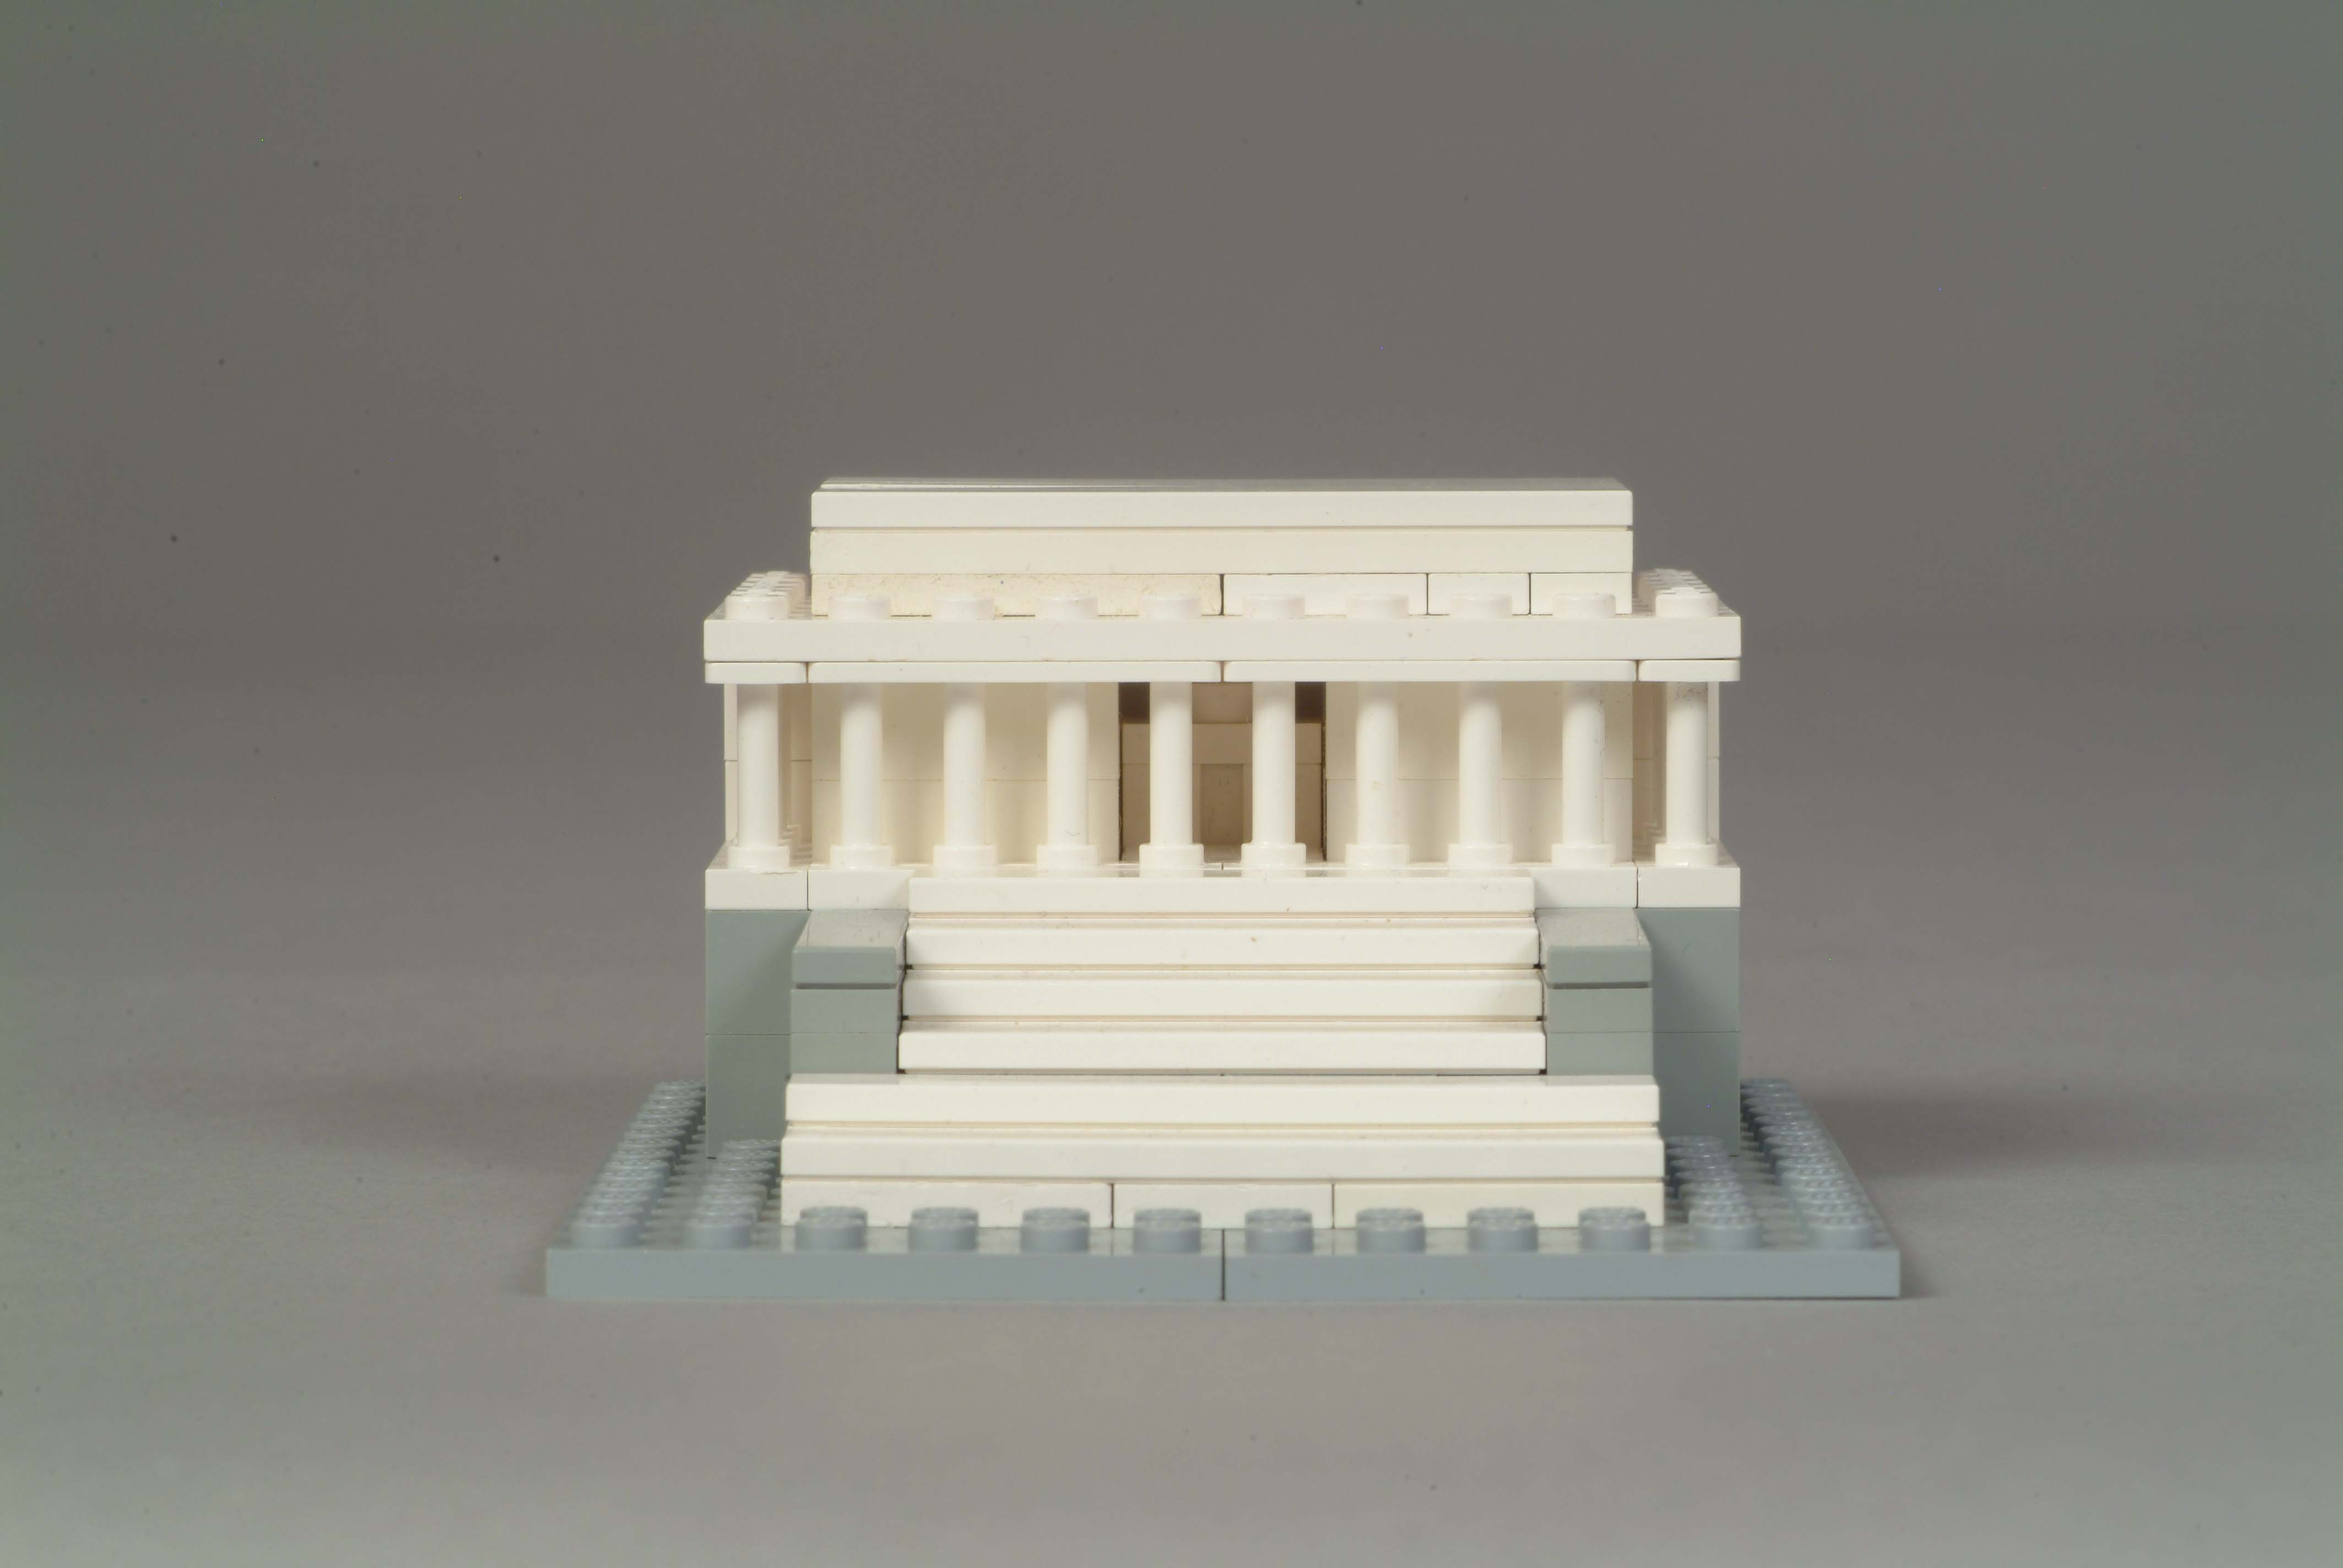 lego img the tam s lincoln memorial kassitzky